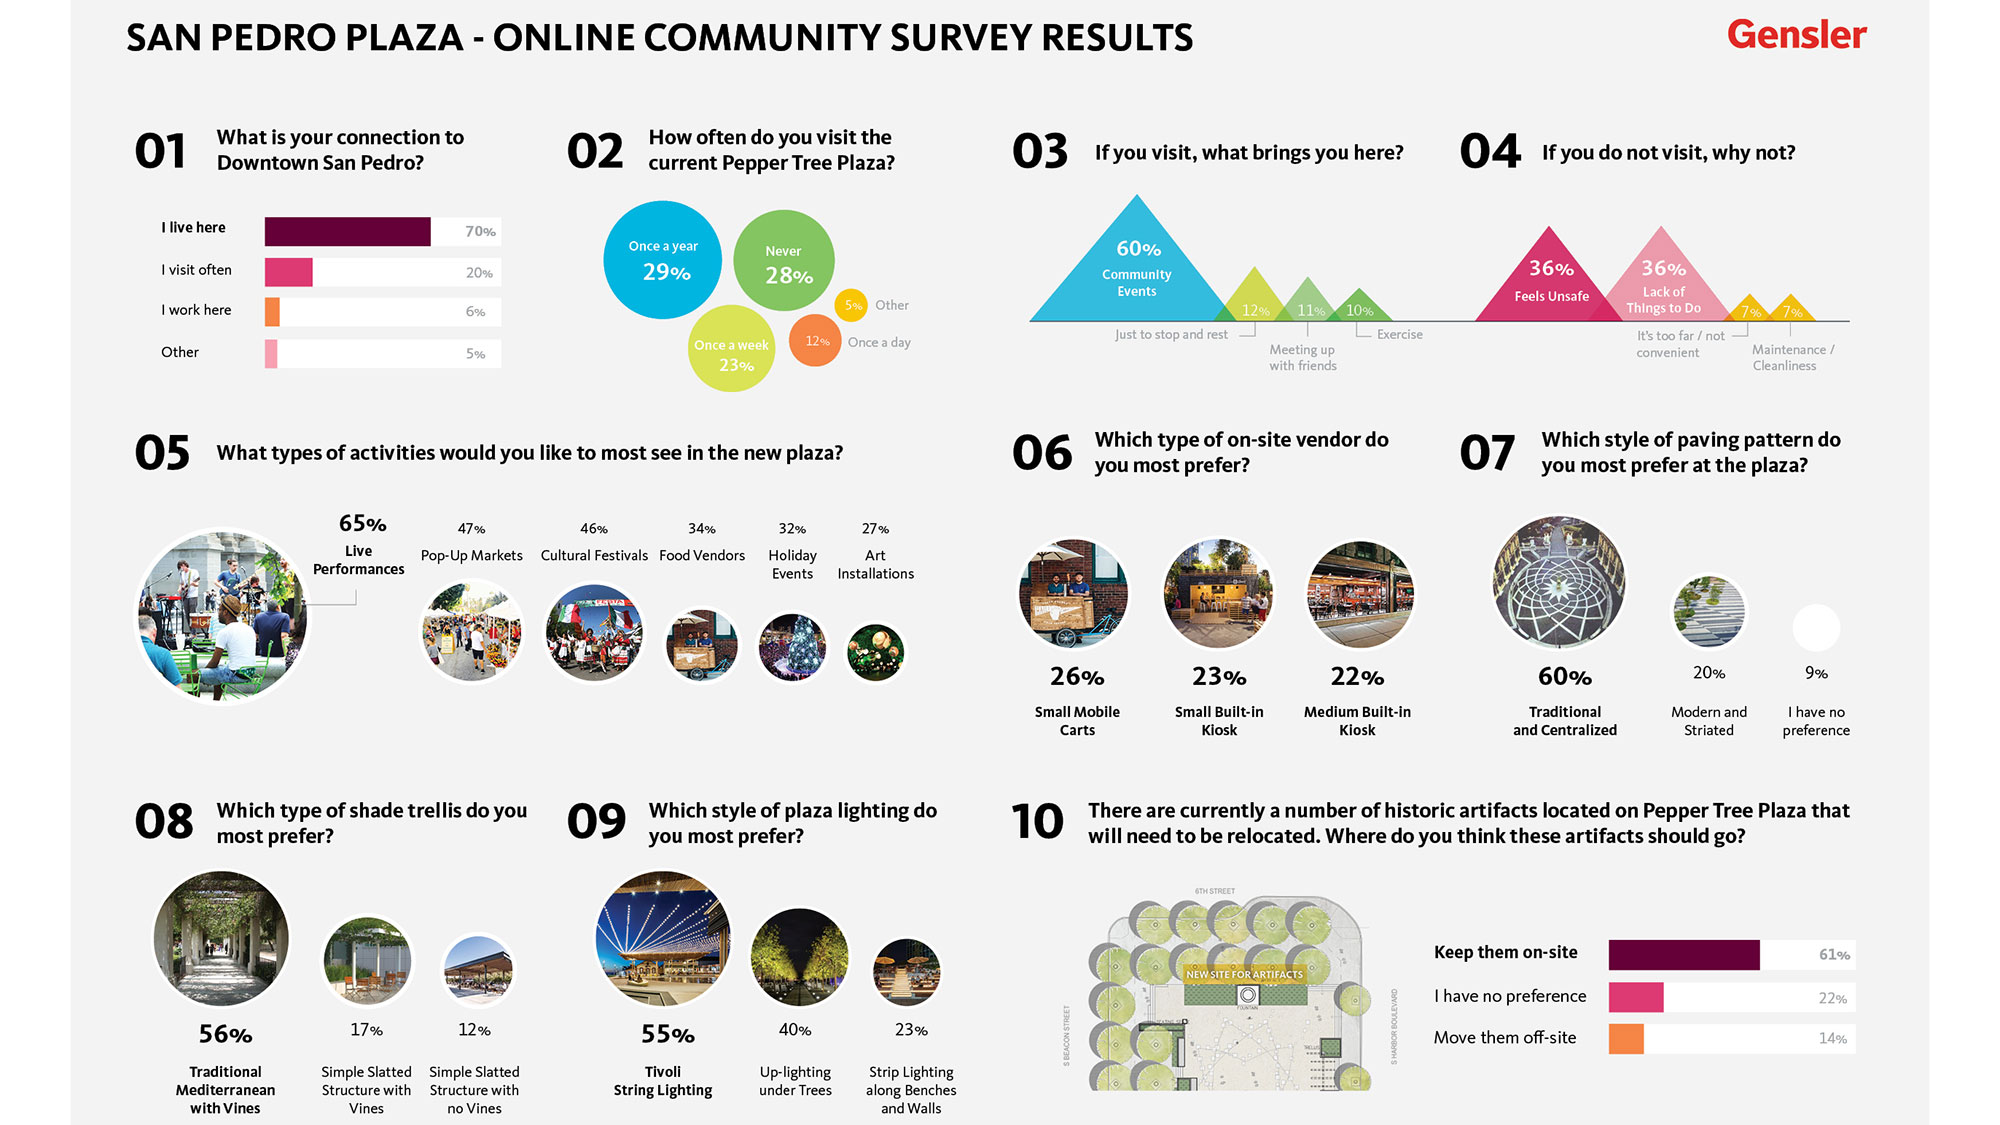 The community engagement survey results for the San Pedro Plaza project